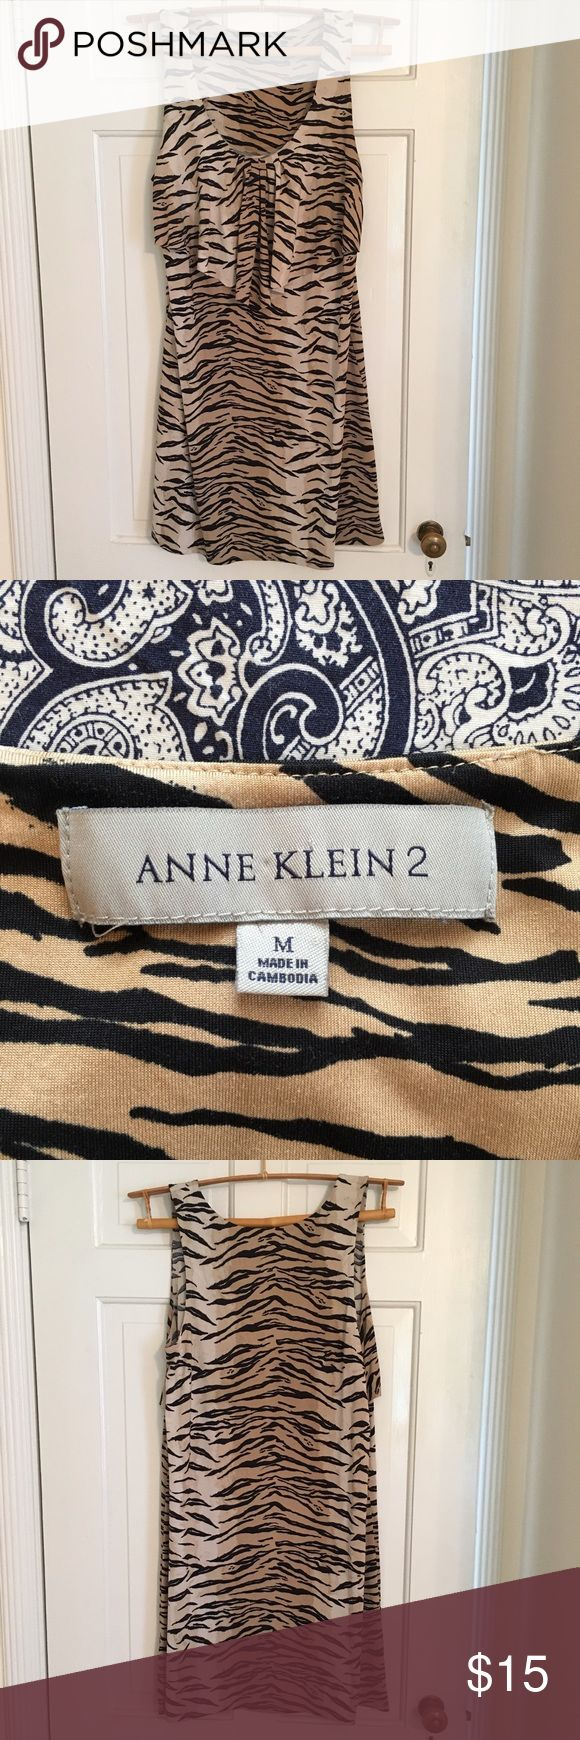 Anne Klein 2 animal print tank/sleeveless dress Anne Klein 2 animal print / tiger stripe tank dress. Super cute for night out! Anne Klein Dresses Midi